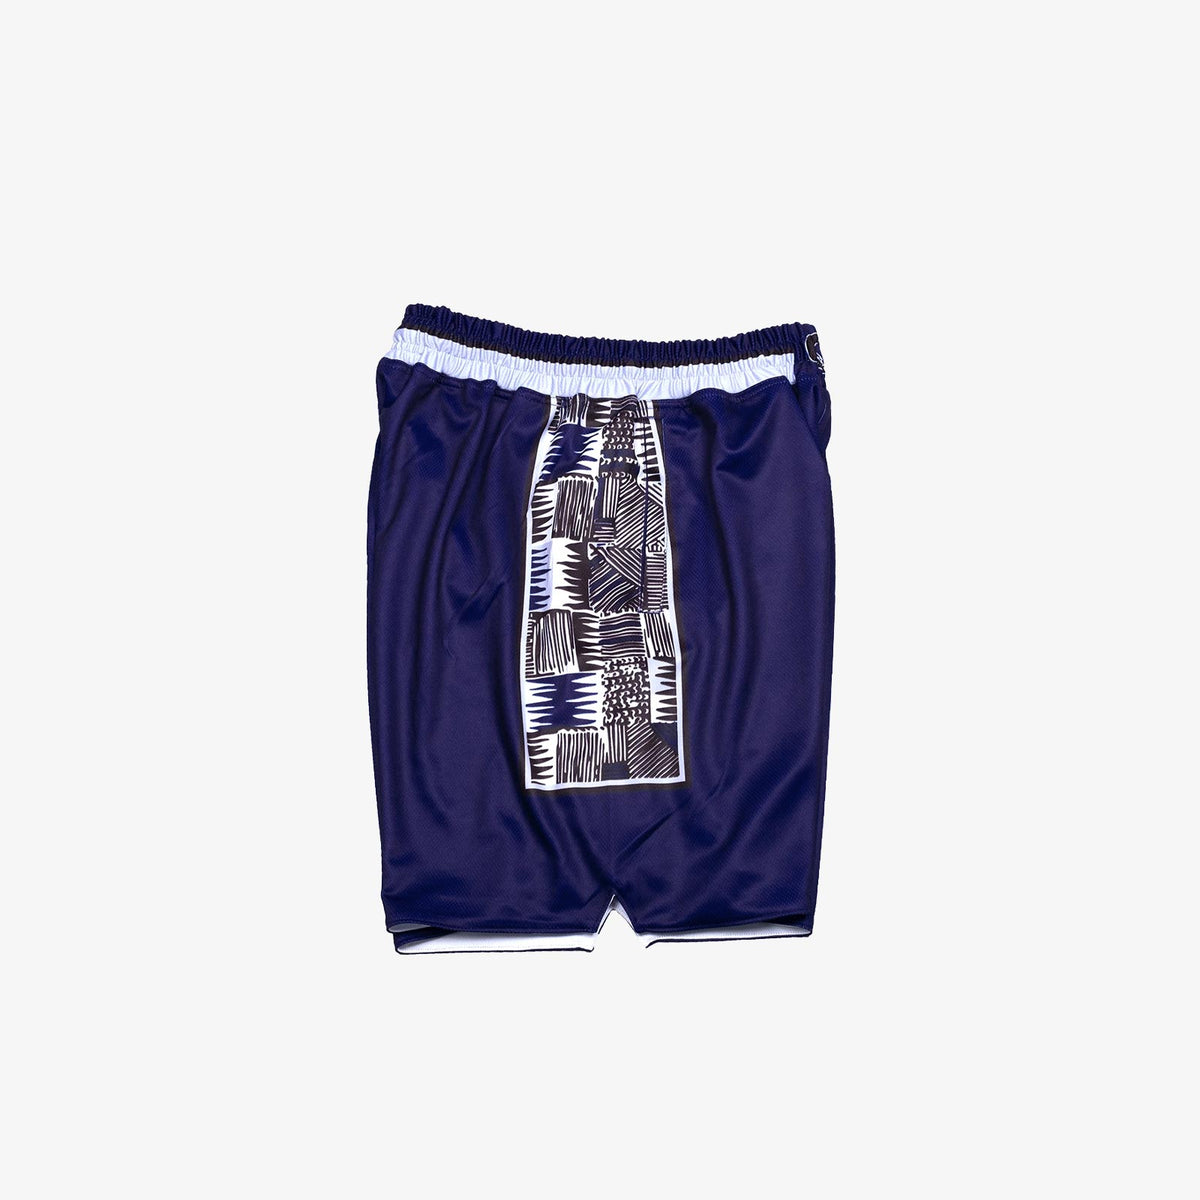 Georgetown 1995-1996 Retro College Basketball Shorts - Navy